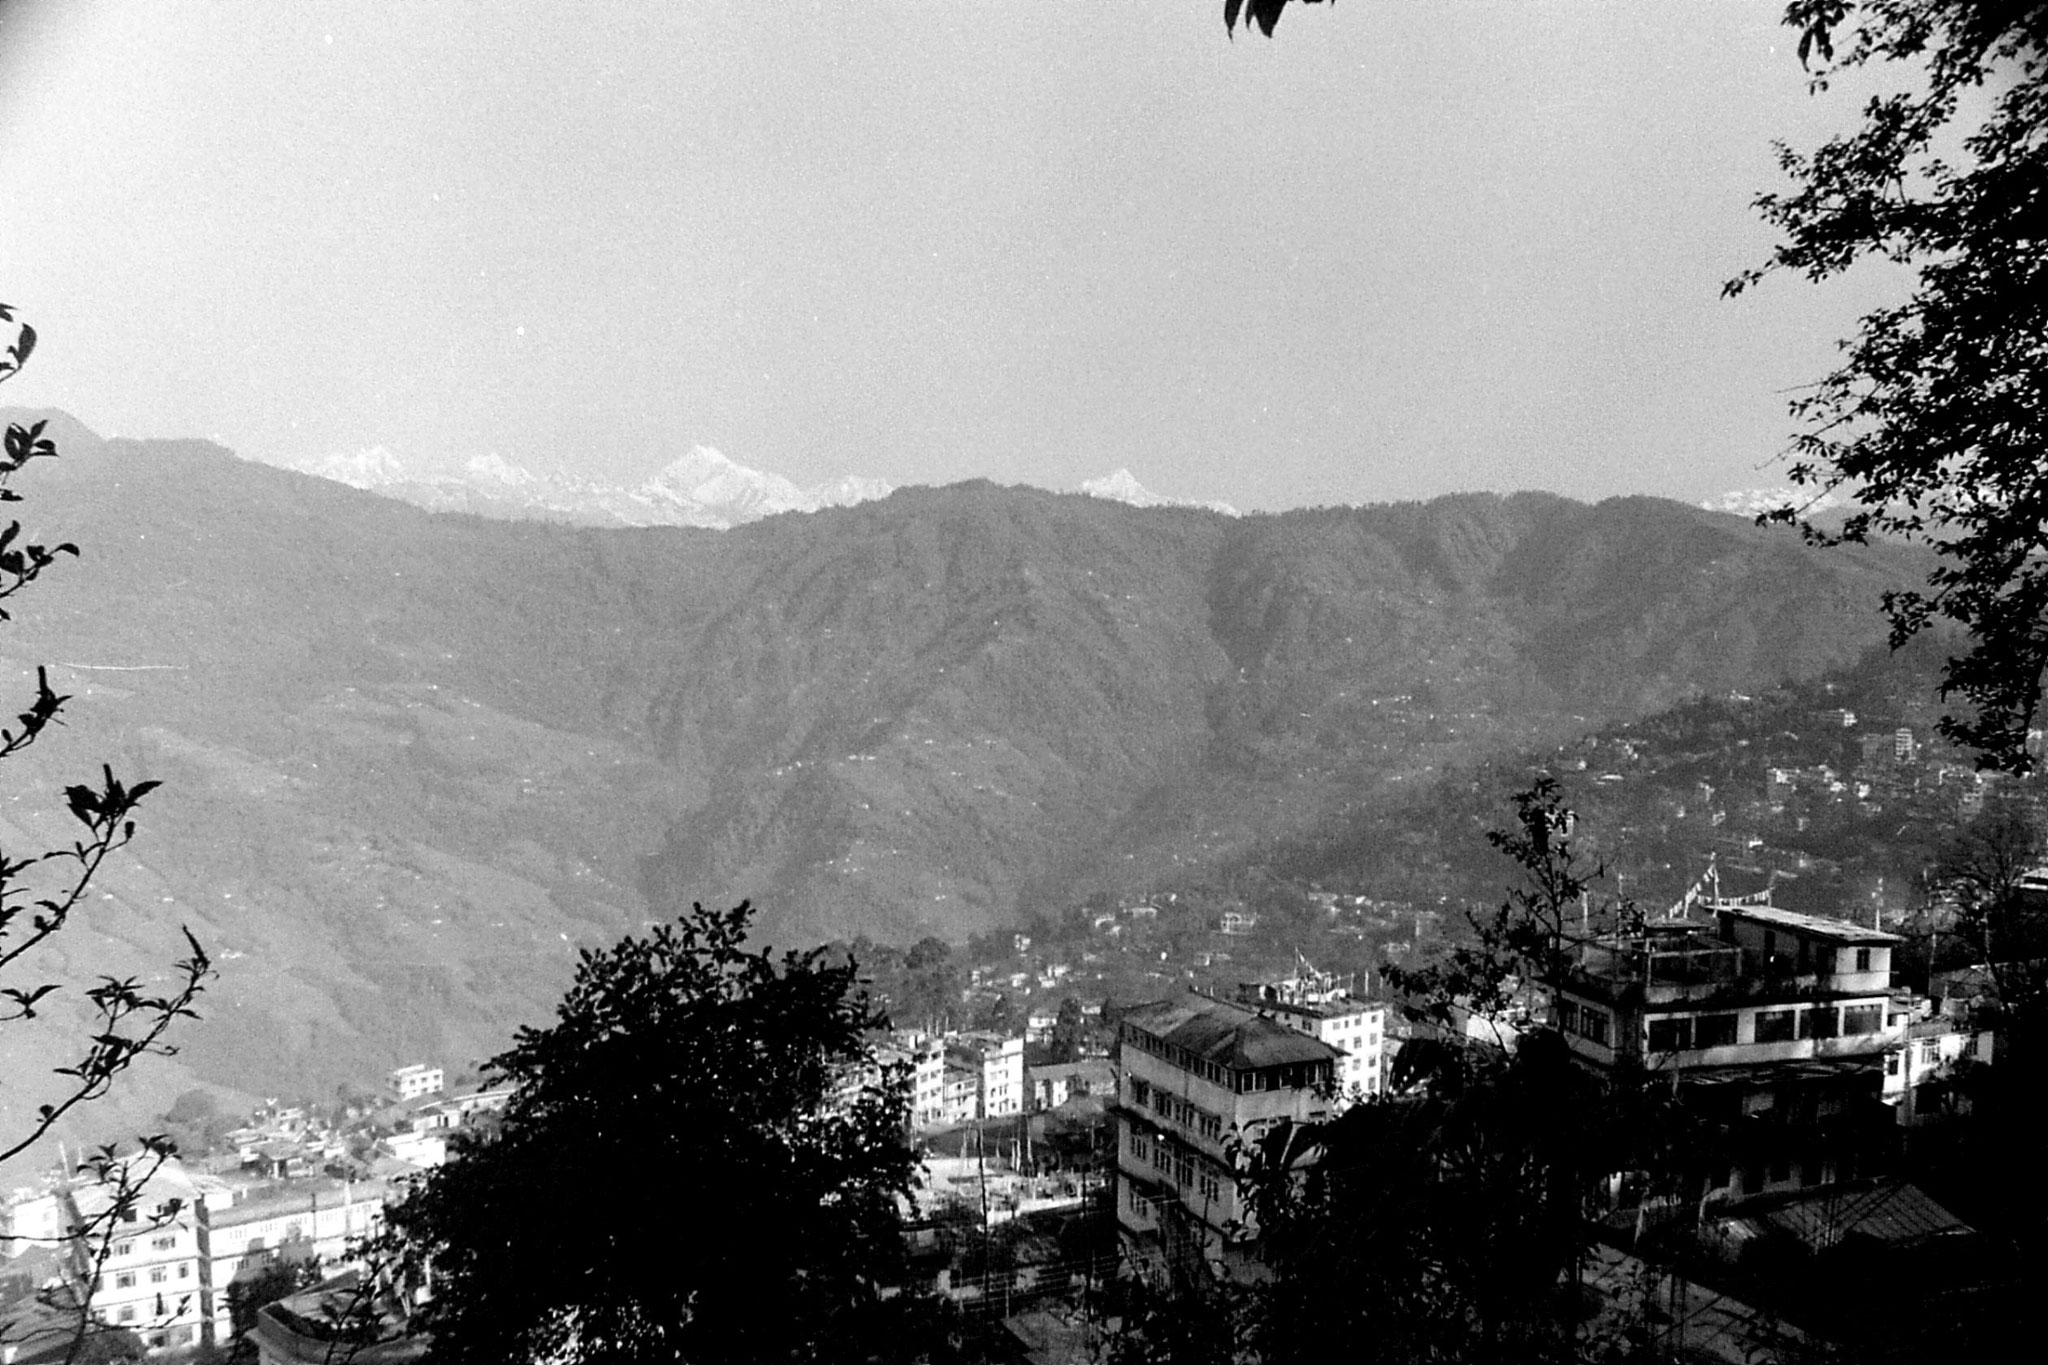 25/4/1990: 29: Gangtok and Kanchenjunga